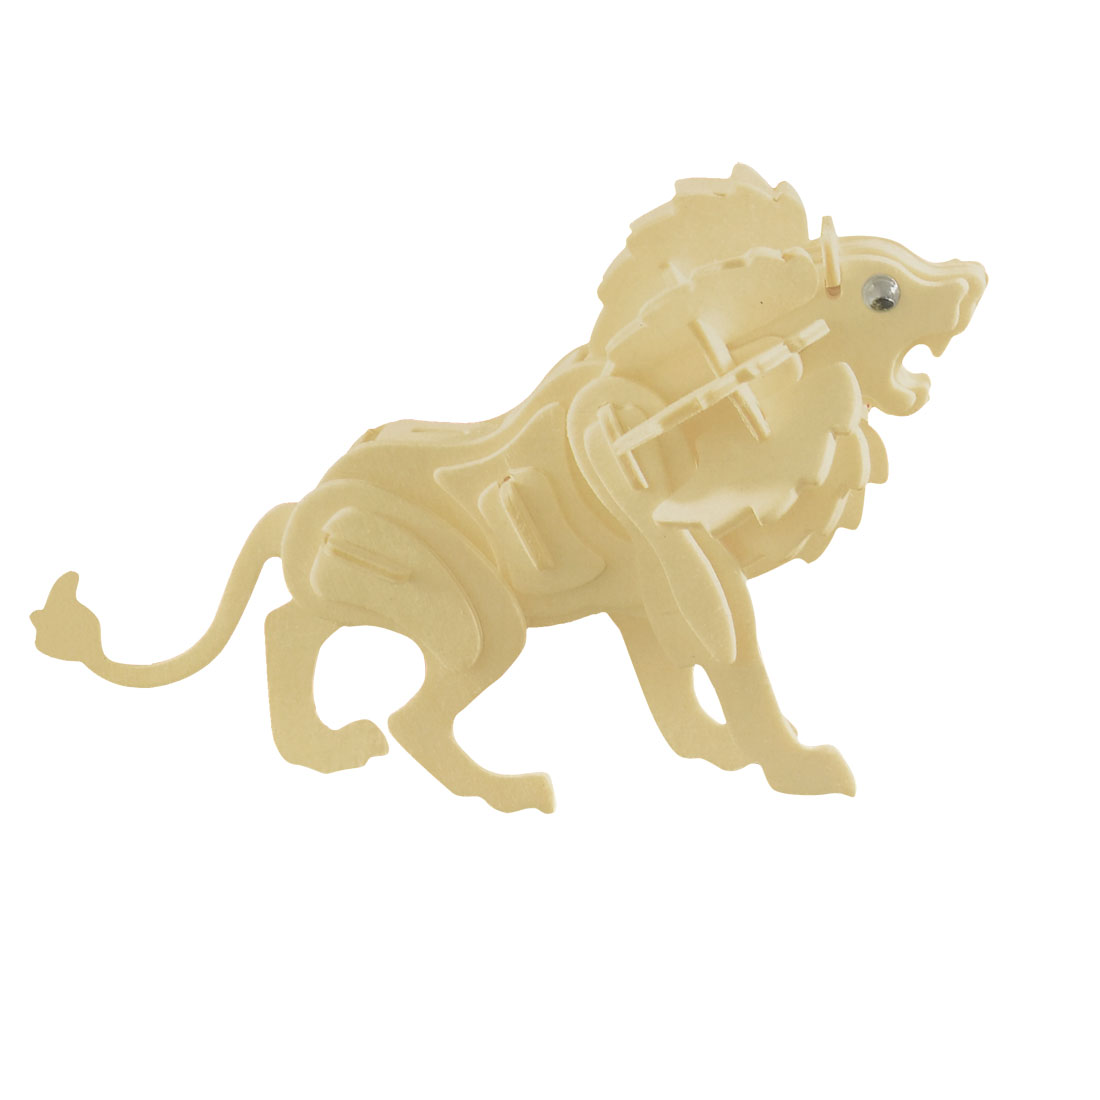 DIY Assembly Lion Wooden Educational Puzzled Toy Woodcraft Construction Kit